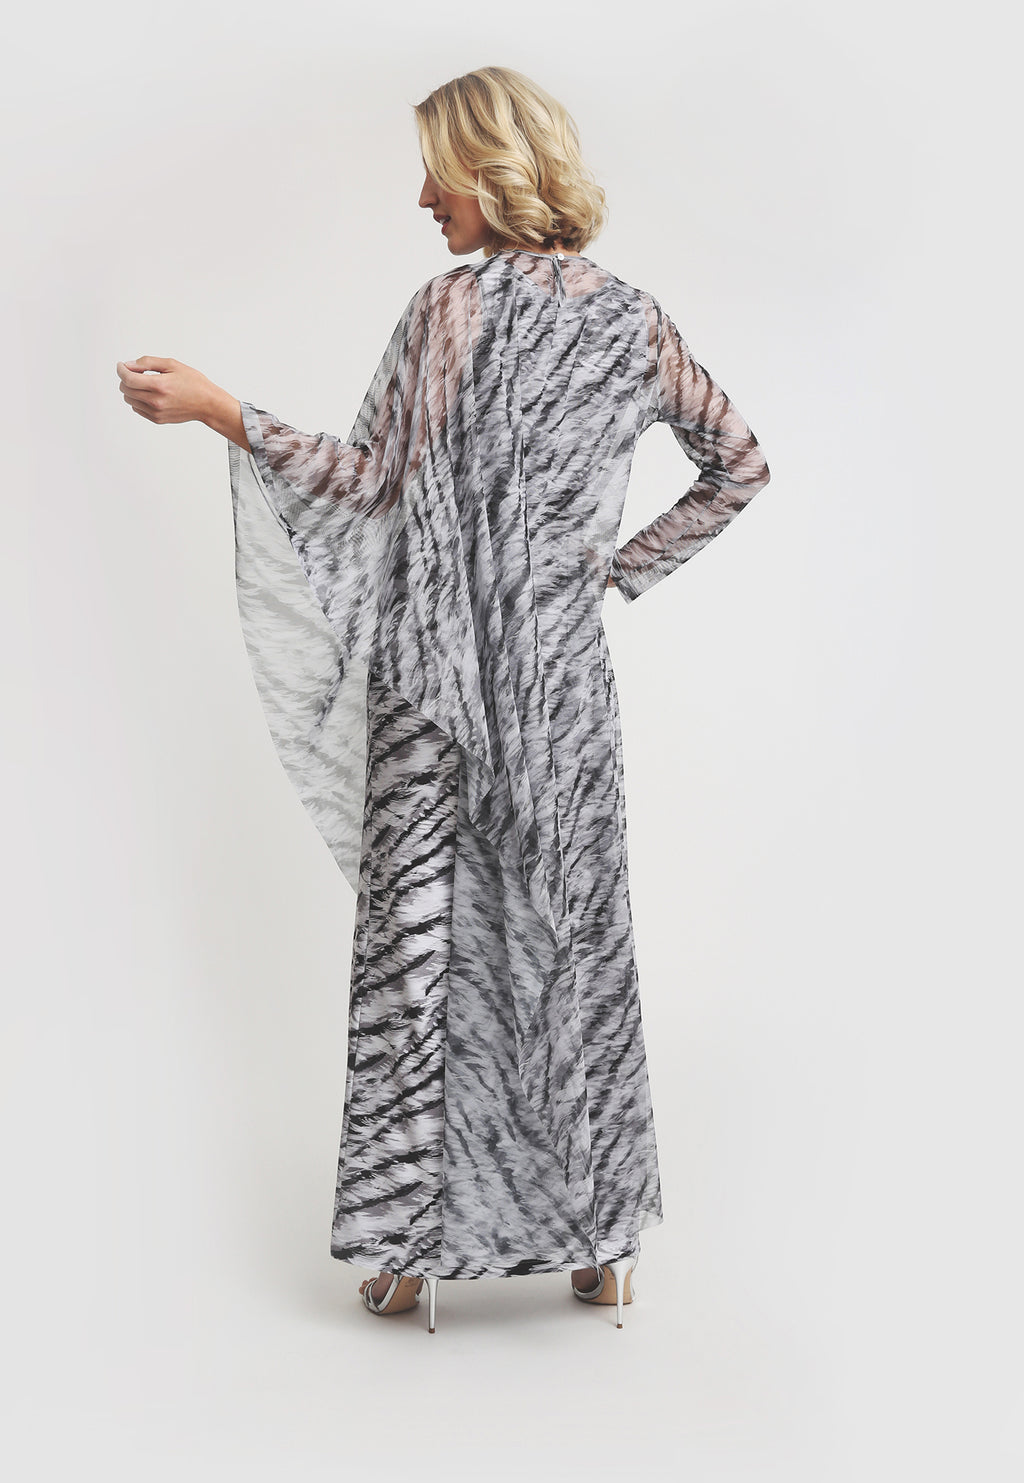 Model in long mesh black and white tiger print poncho with one sleeve with matching dress underneath